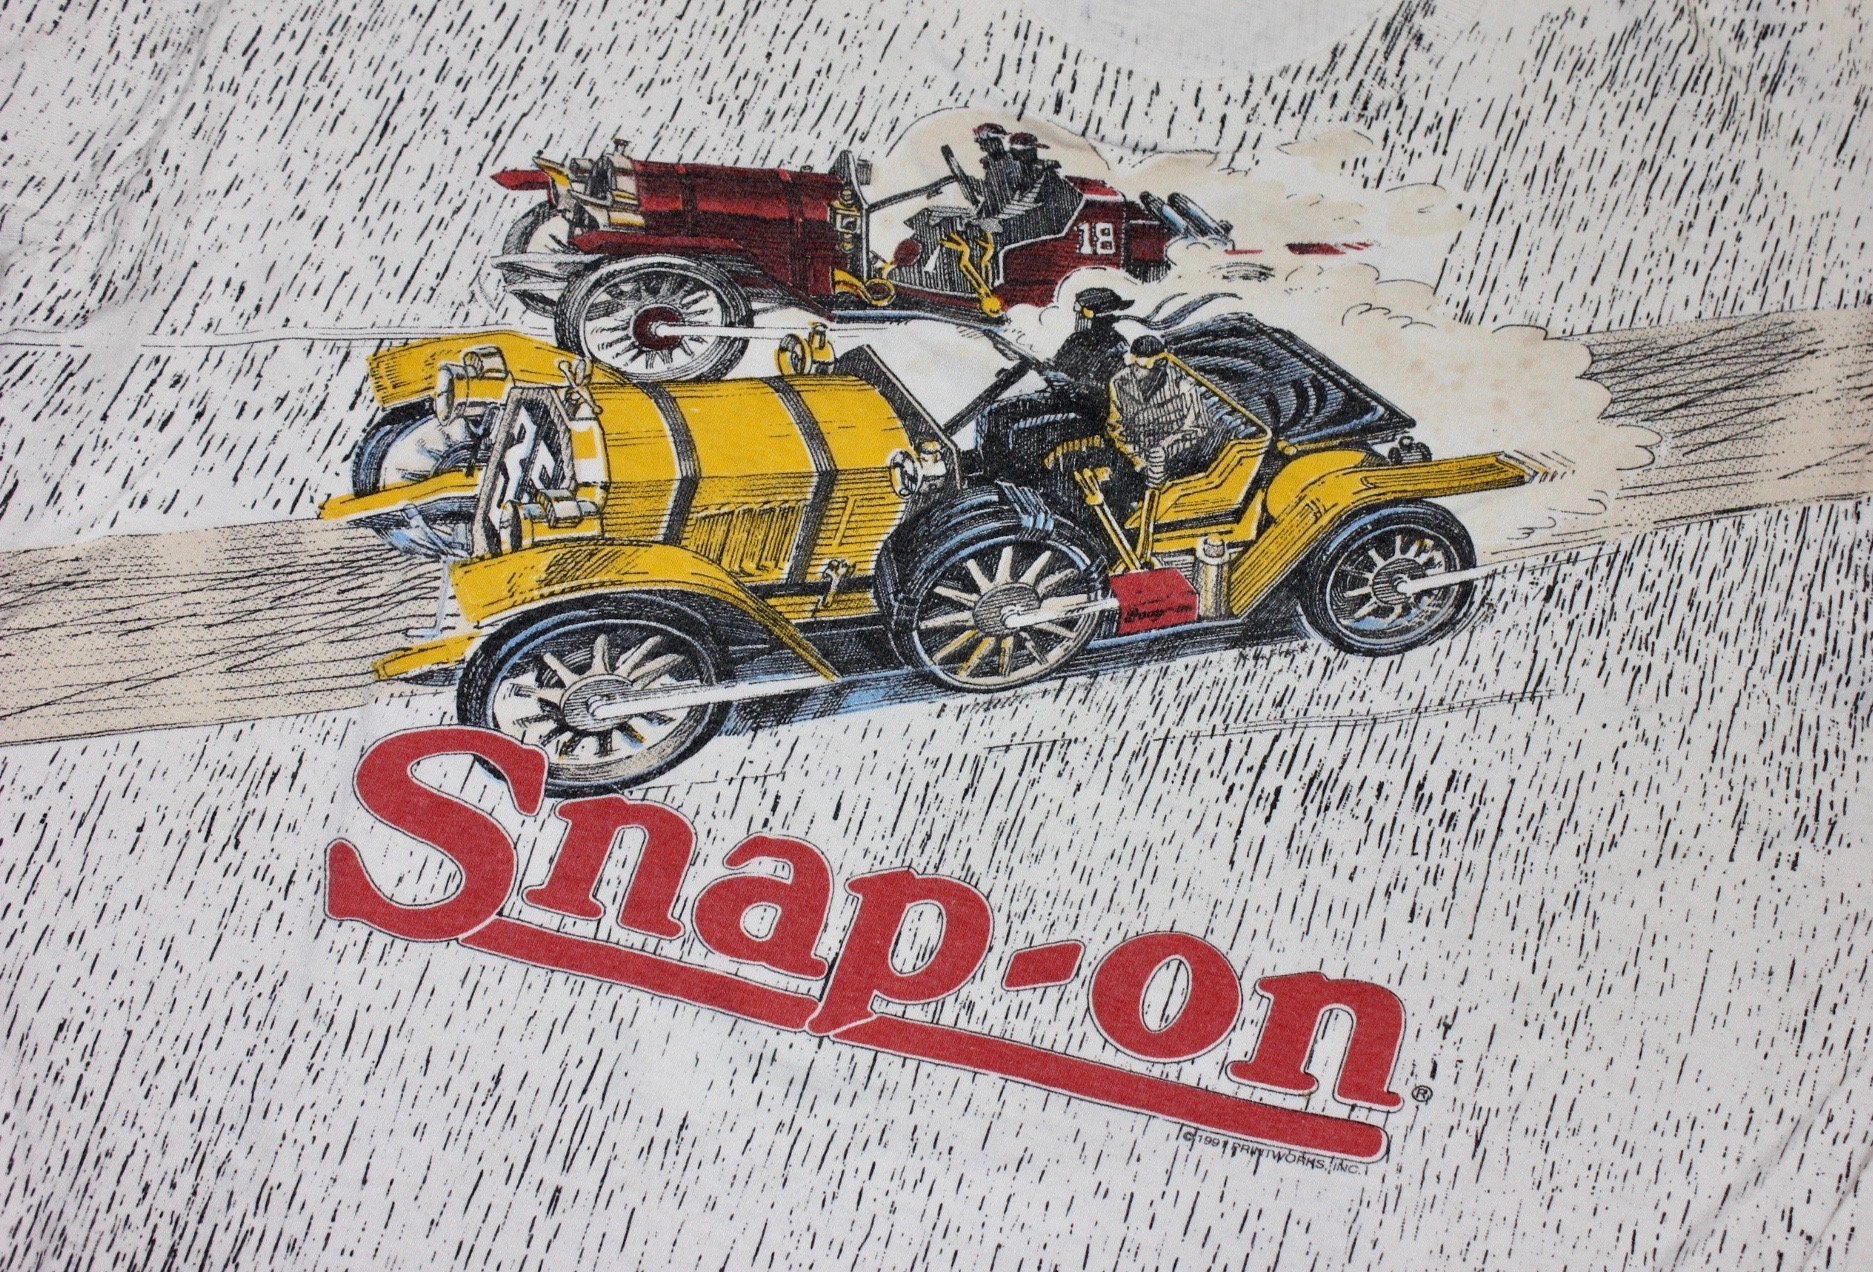 Men's 1920s Style Ties, Neck Ties & Bowties Vintage 1980s -Fruit Of The Loom- Unisex T- Shirt. Snap-On Tools - Early Automobile. Ring-Spun Cotton Print On White. Mens Large $5.50 AT vintagedancer.com